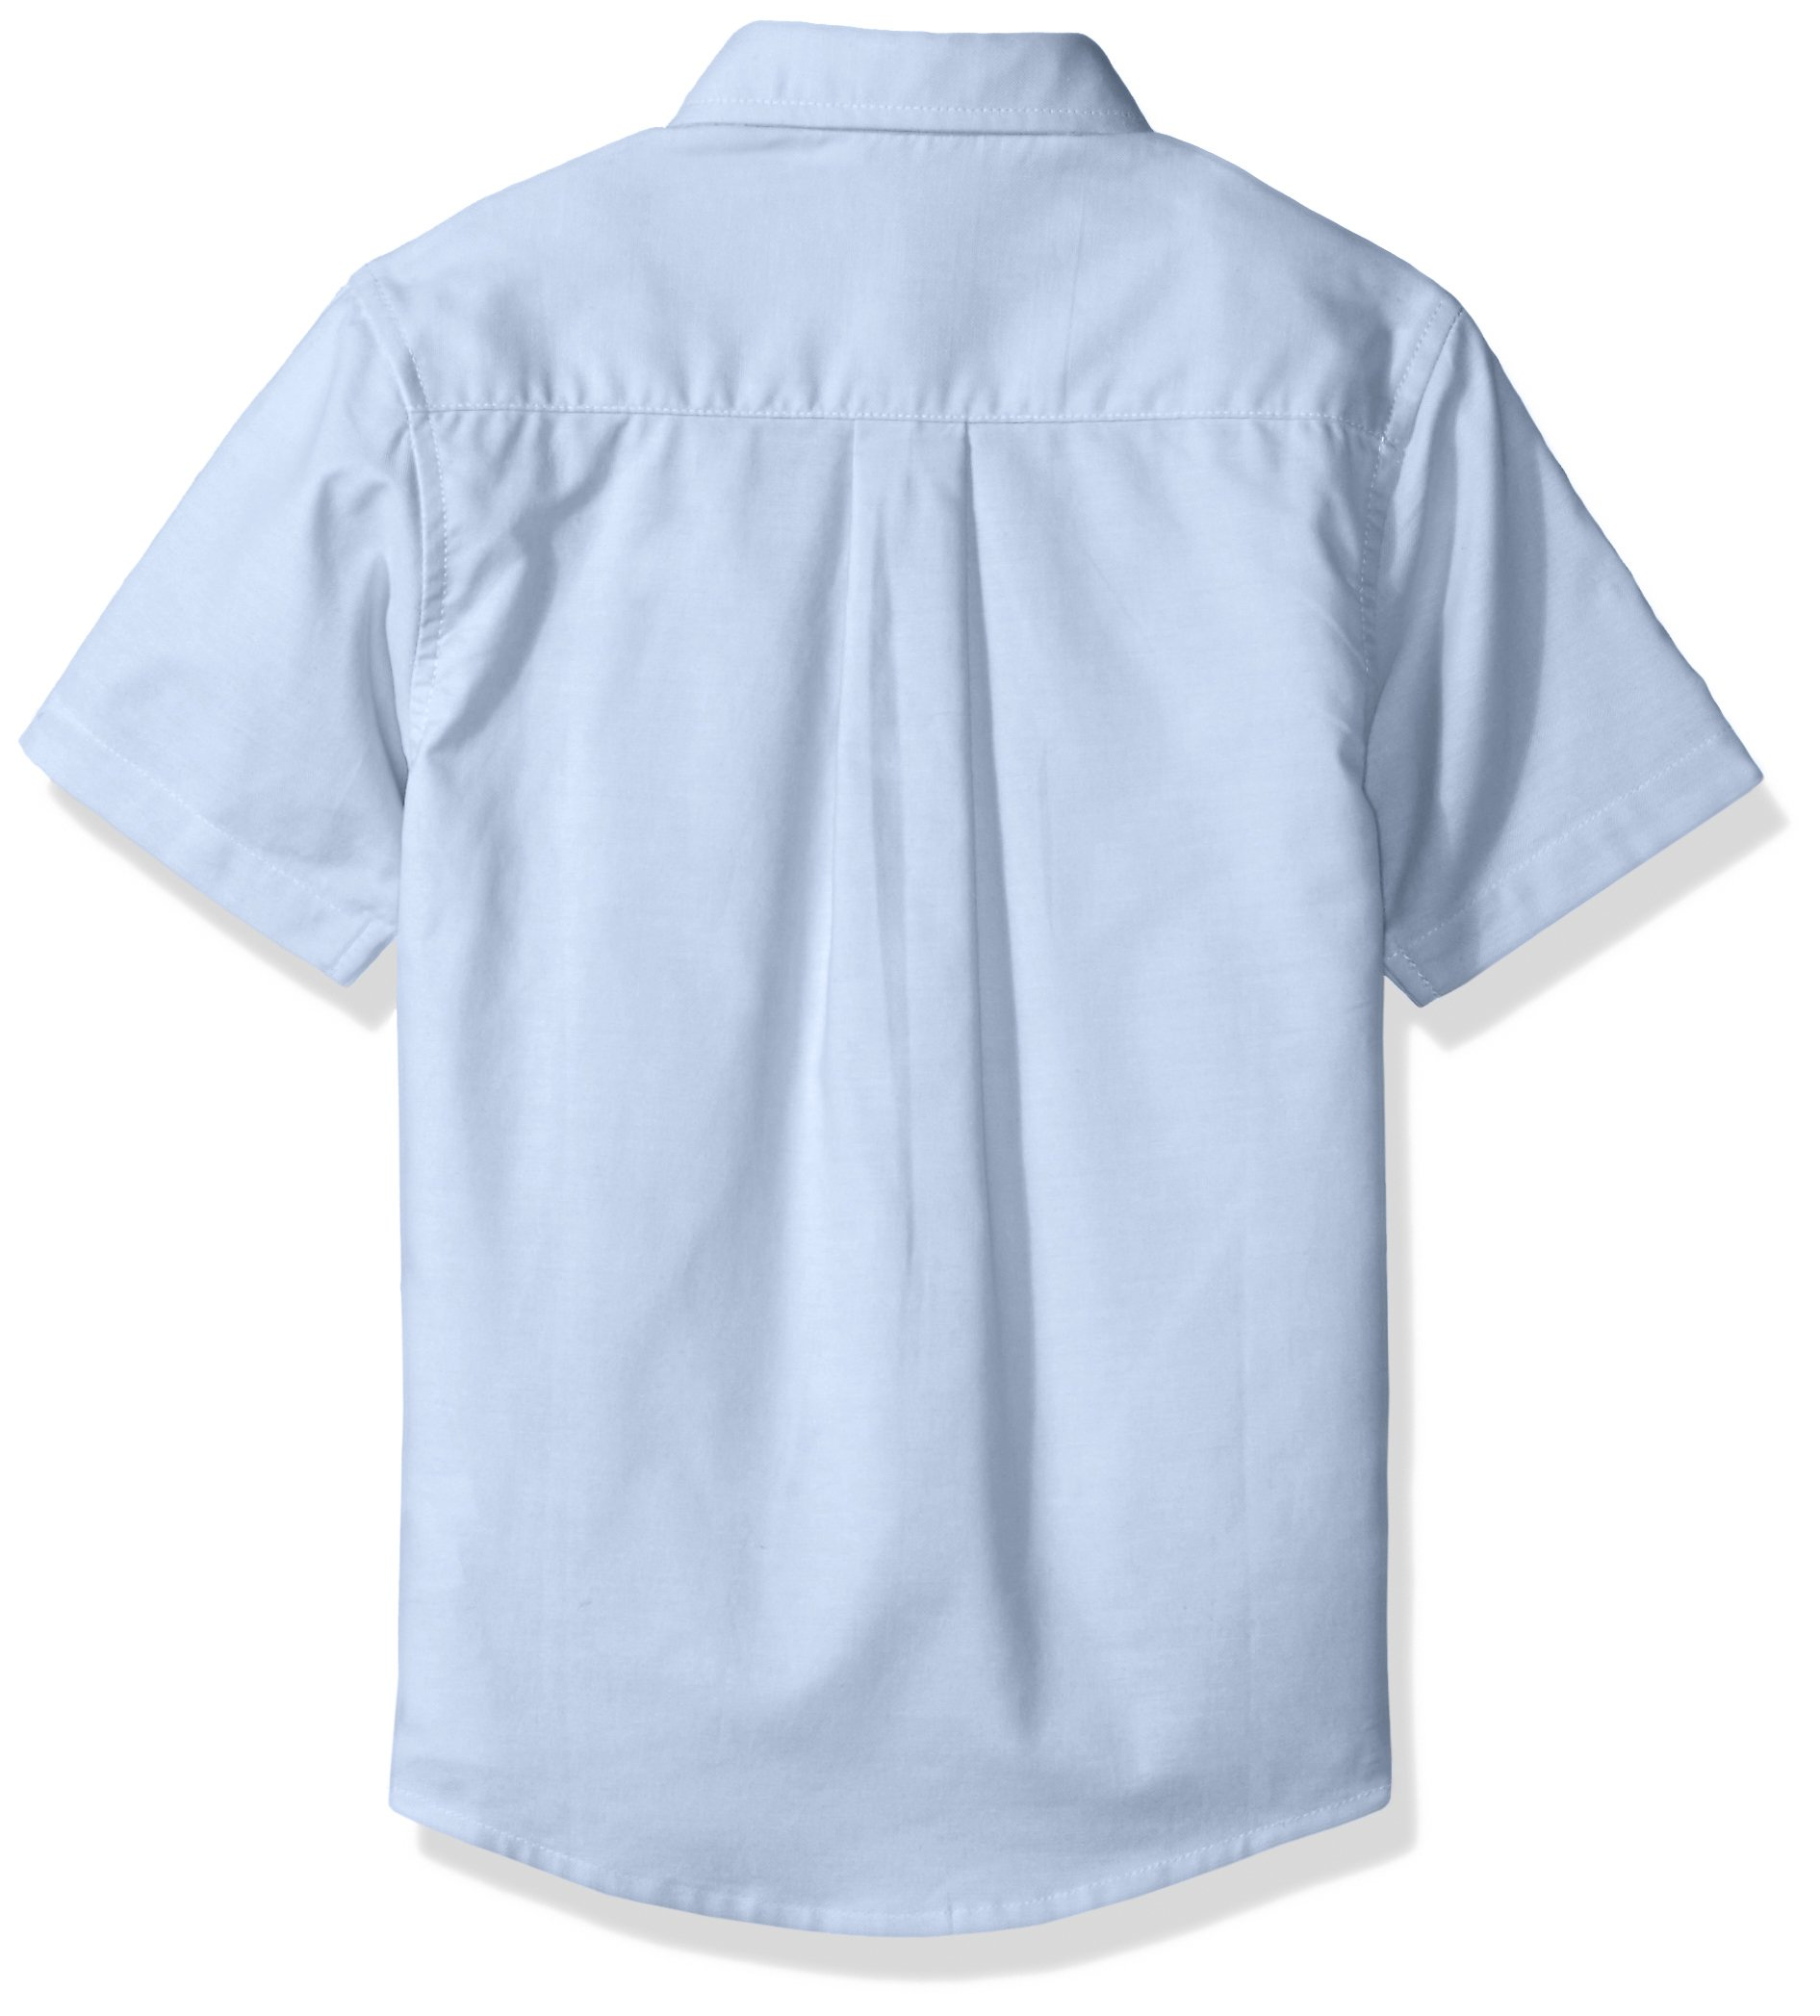 French Toast Boys' Toddler Short Sleeve Oxford Shirt, Light Blue, 3T by French Toast (Image #2)